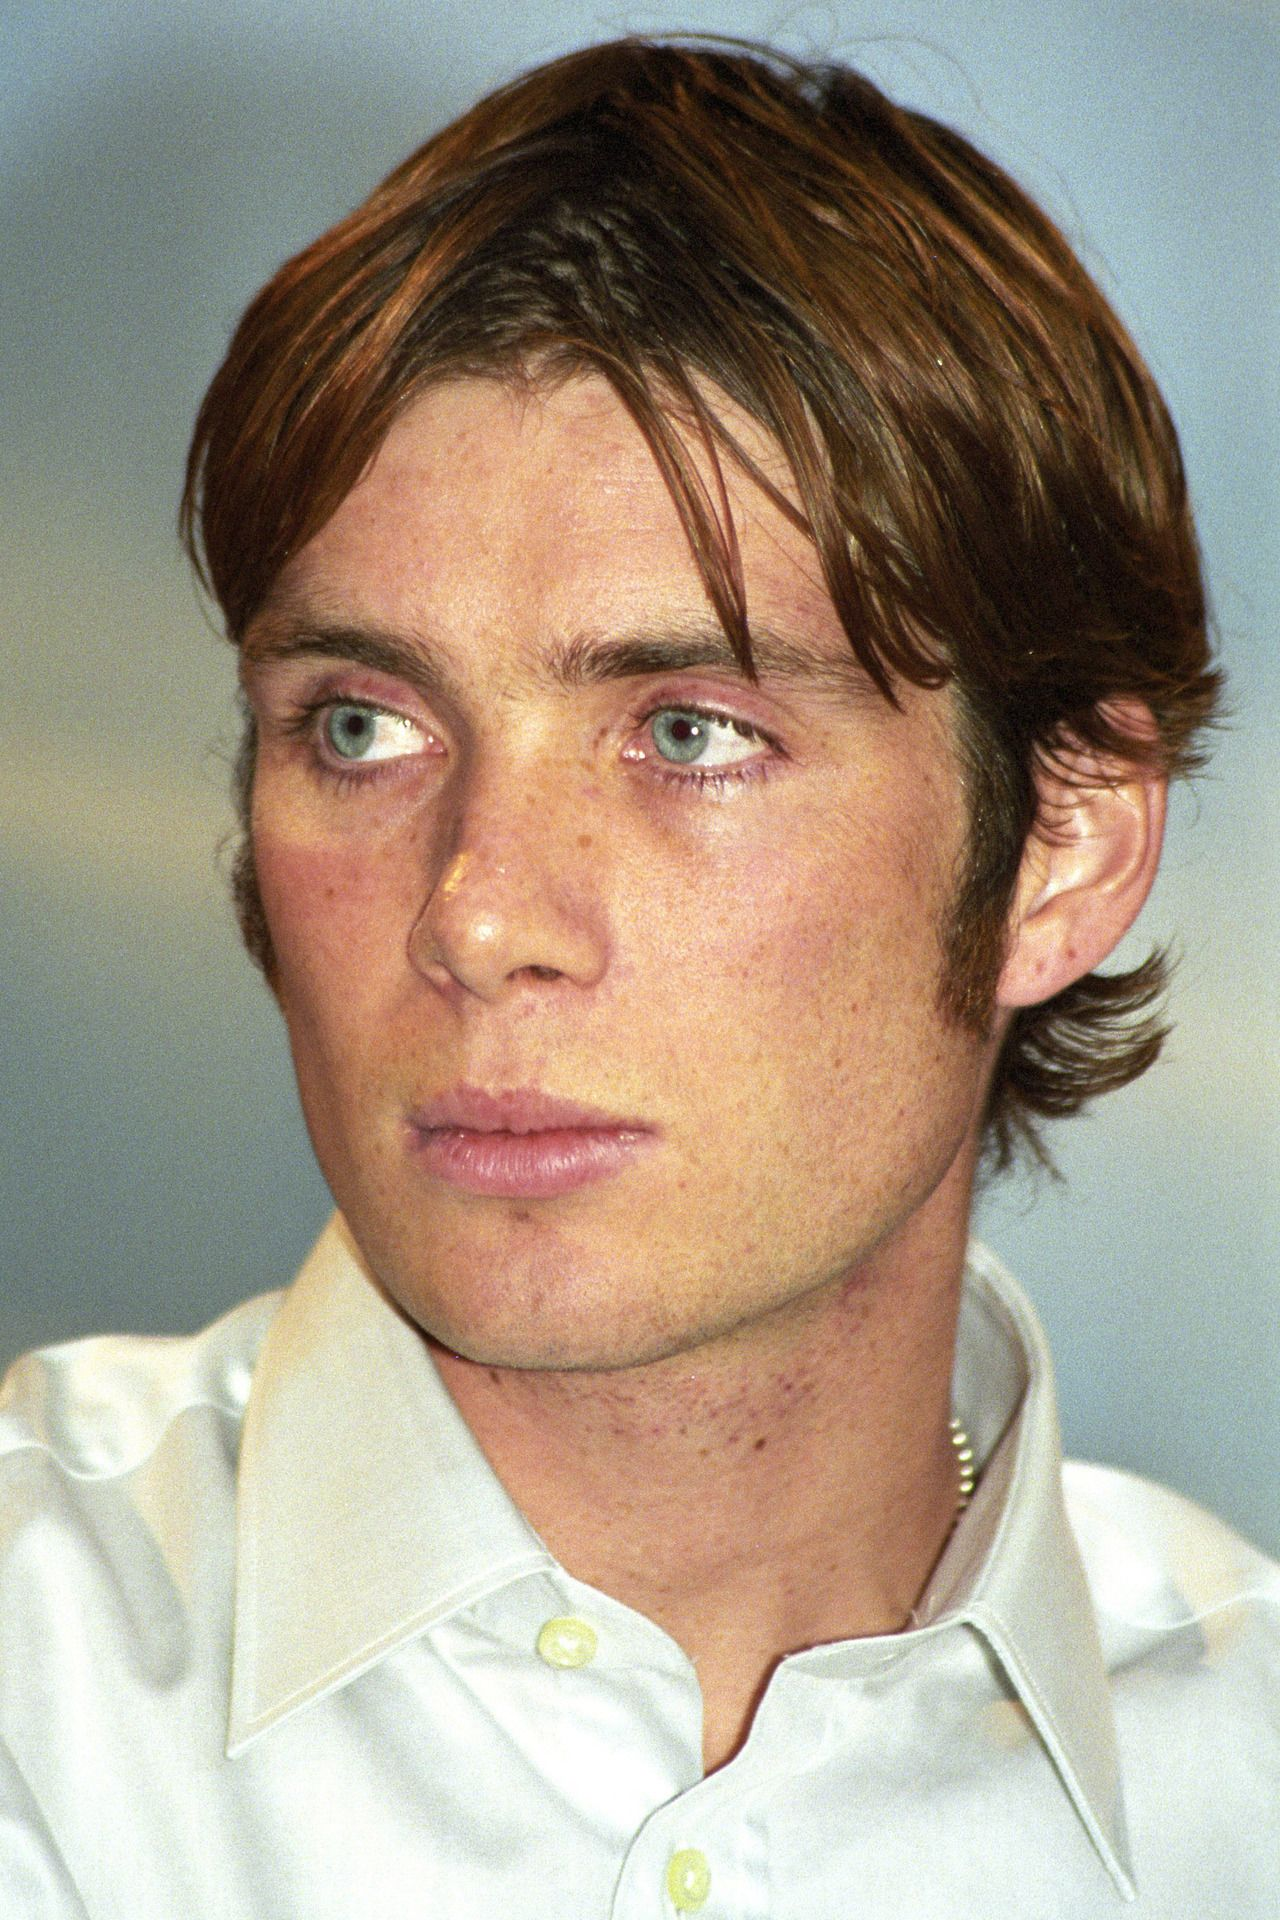 A young Cillian Murphy. | Murphy actor, Cillian murphy ...